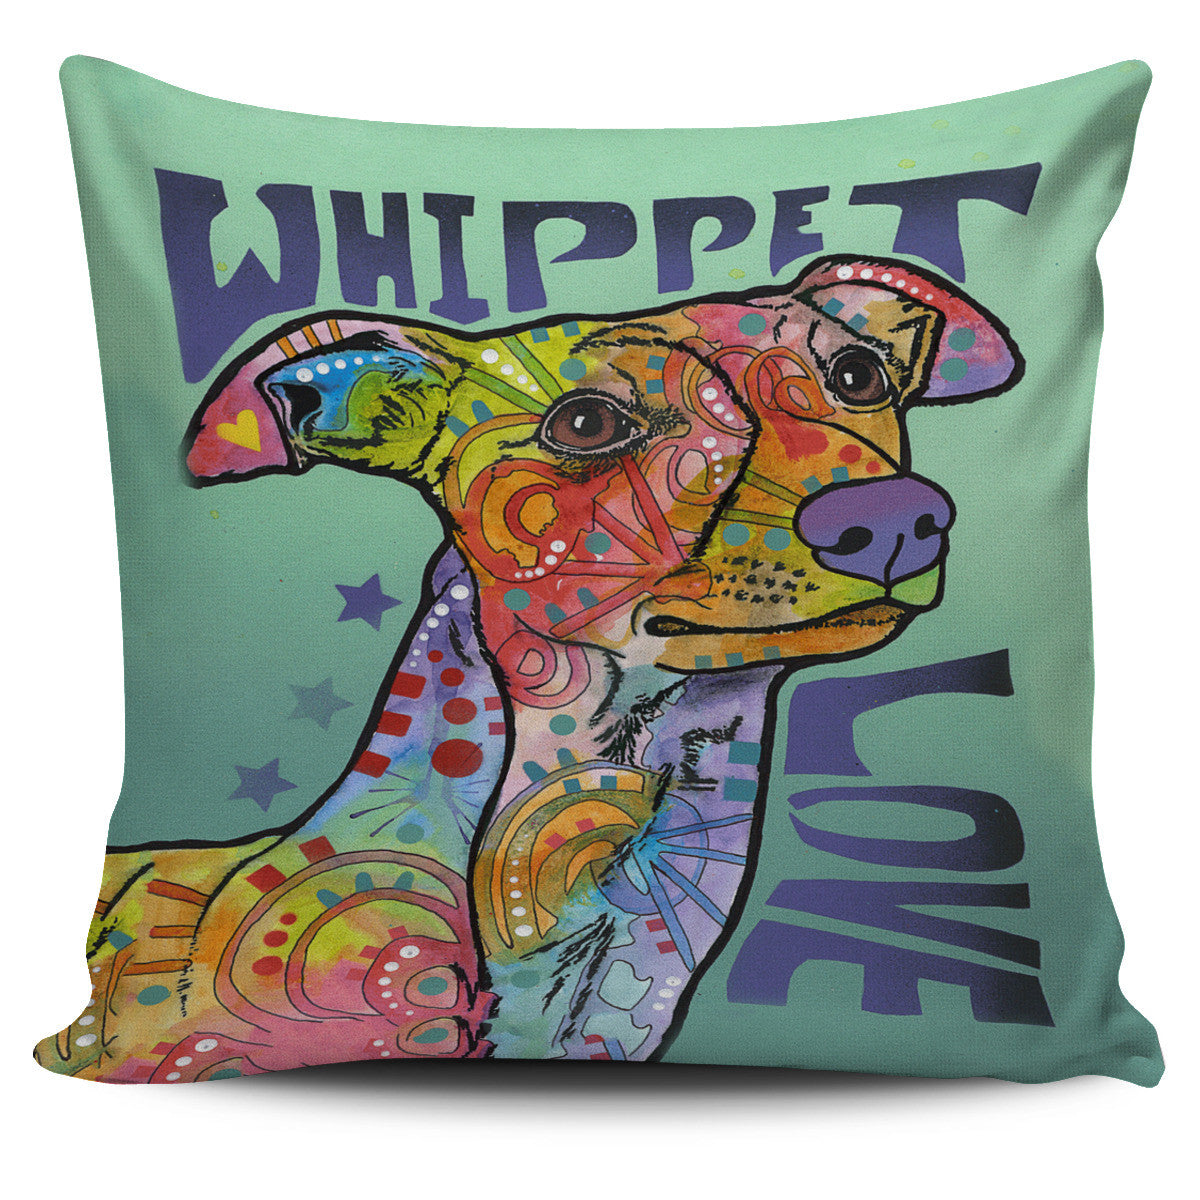 Whippet Love Pillow Covers